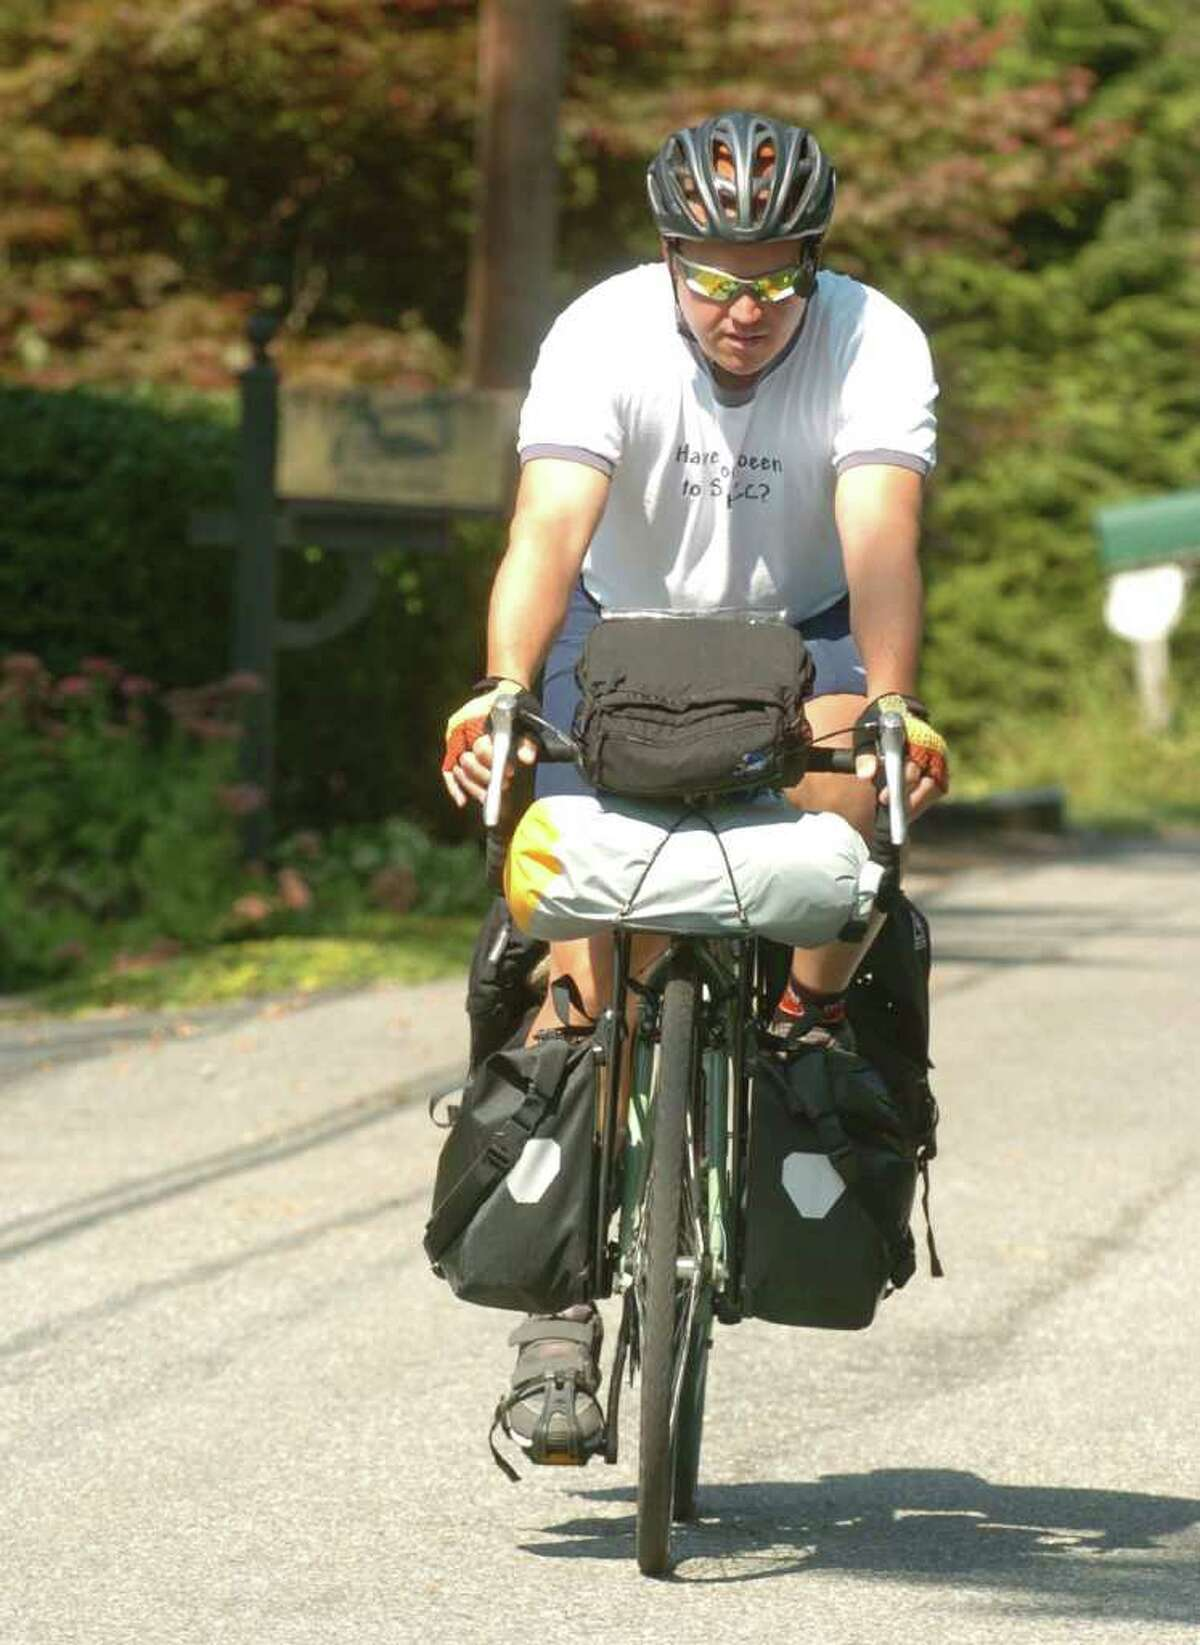 Blake Brown, 37, of Brookfield, takes a ride outside his home in Brookfield, Sept. 22, 2010. Brown is riding his bicycle from Maine to Florida on a 37-week journey to raise money for his church.